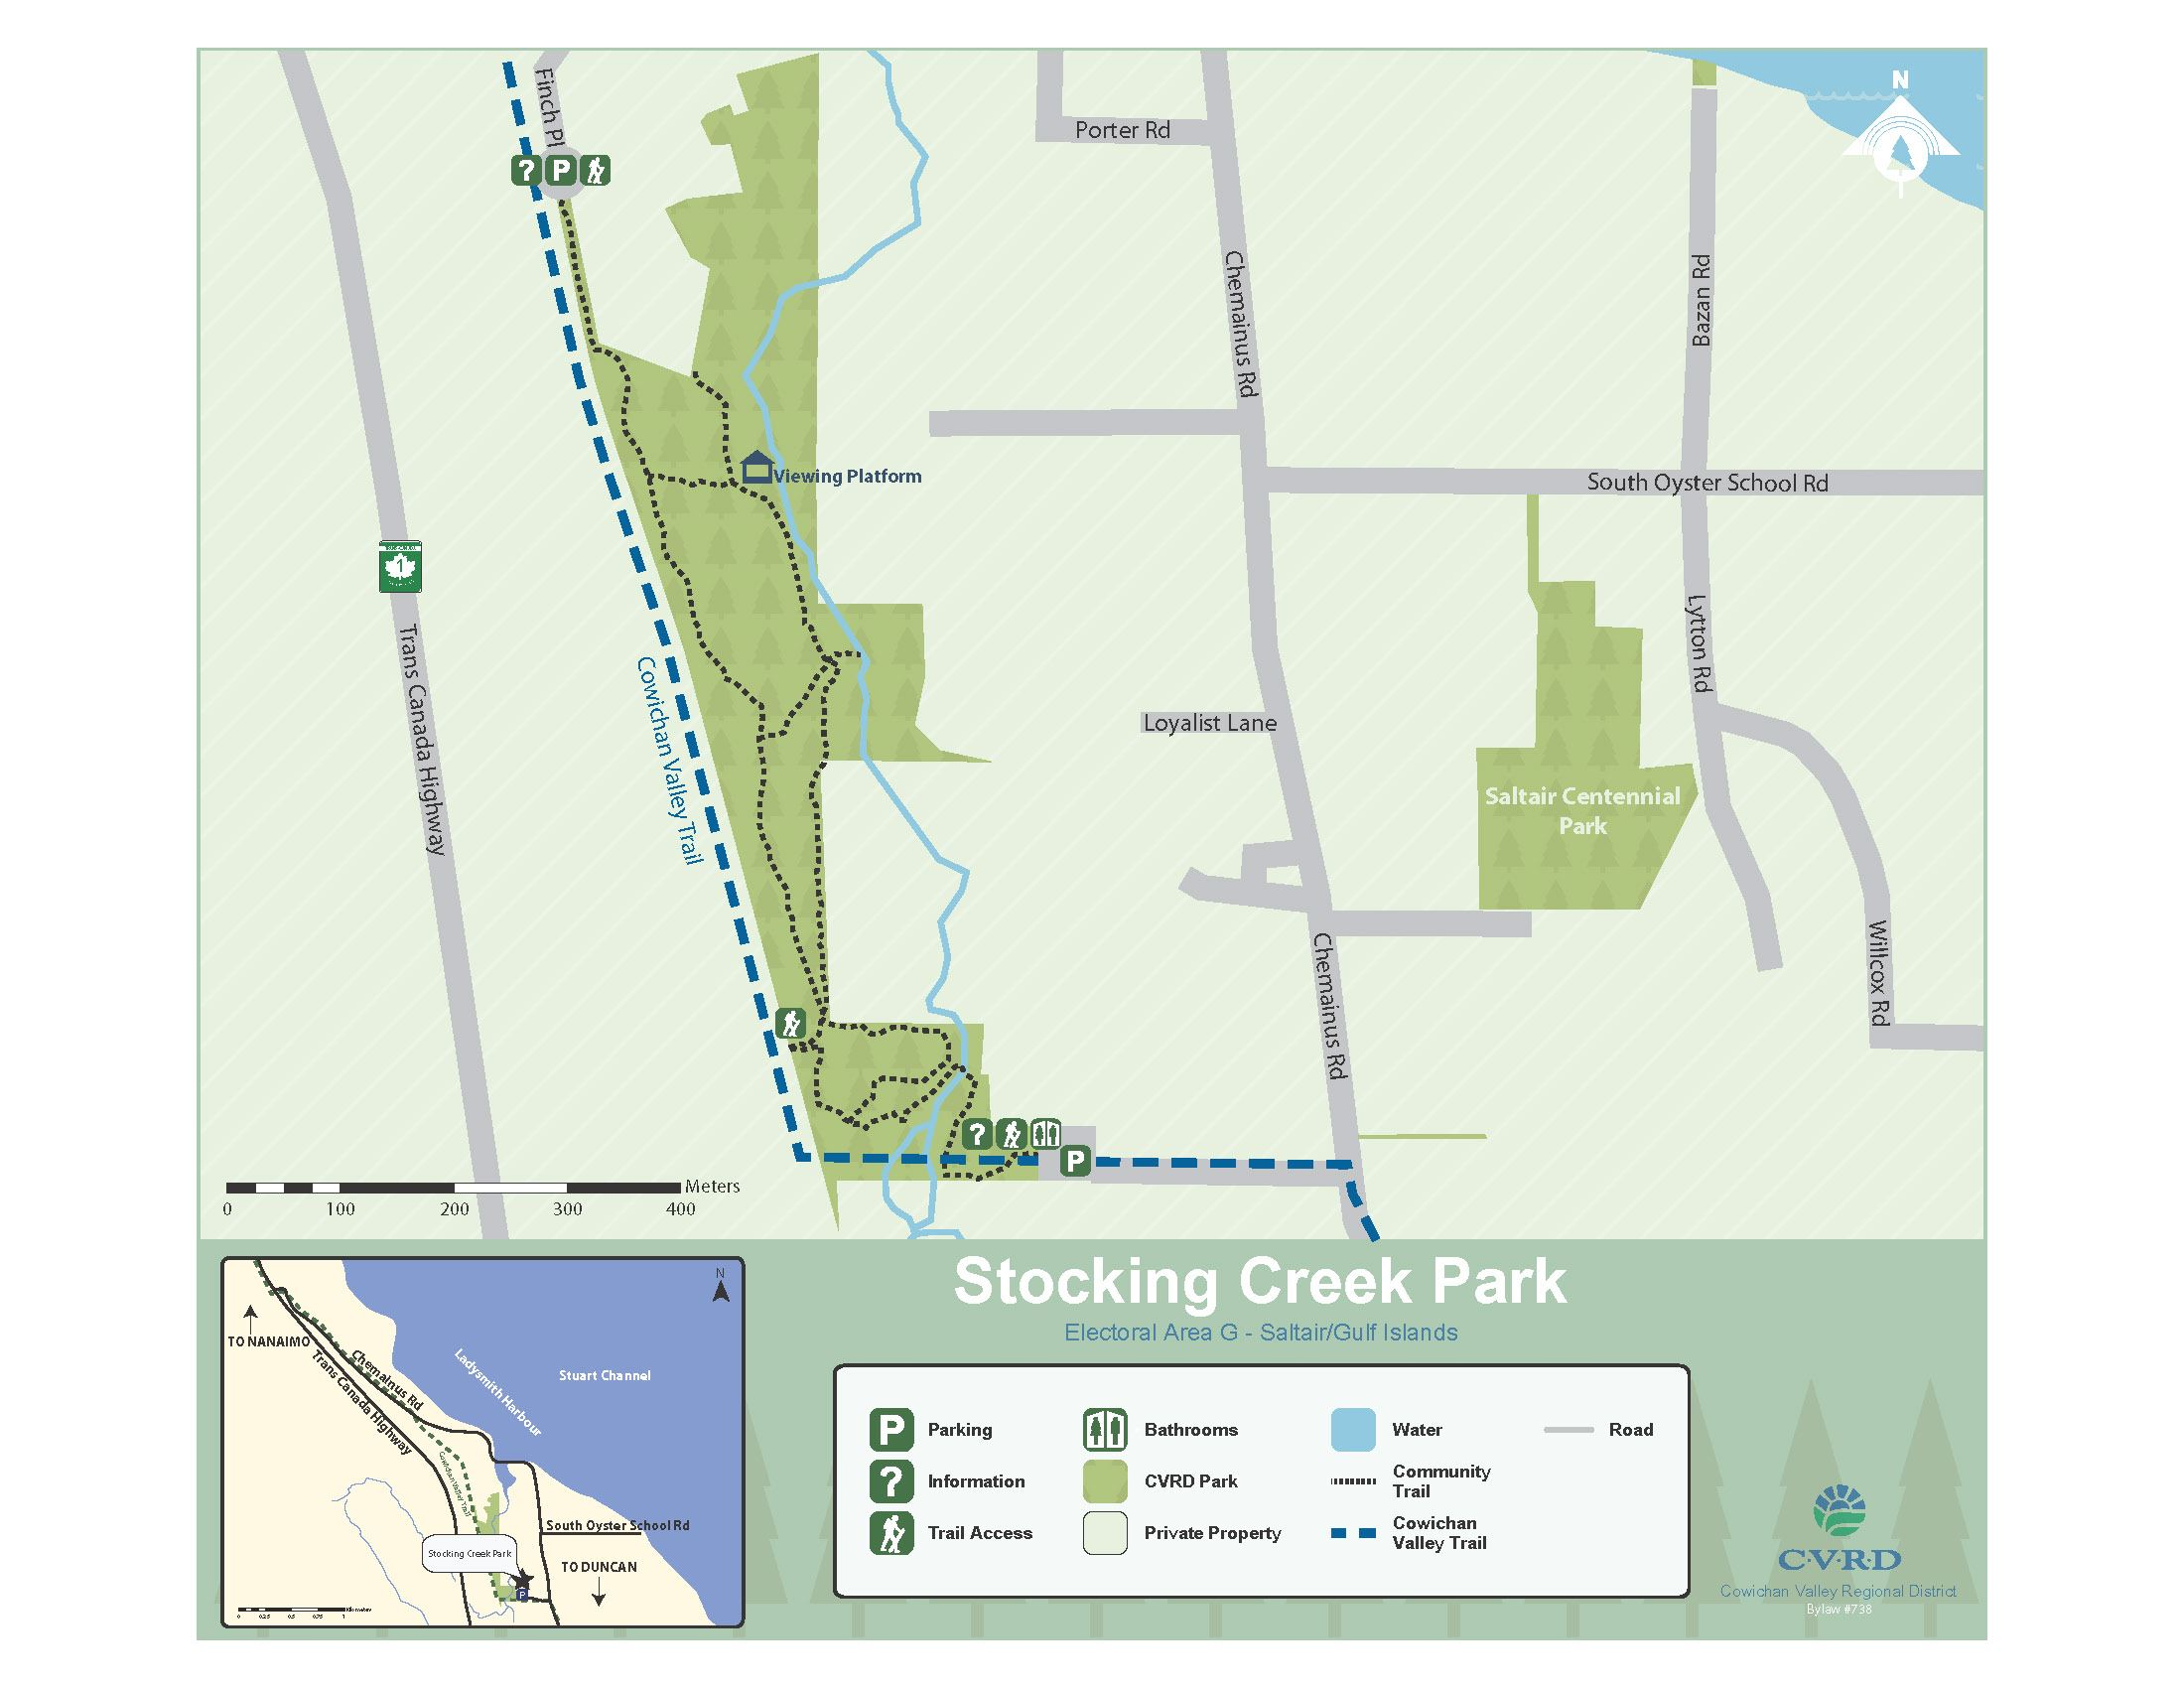 Stocking Creek Park Map